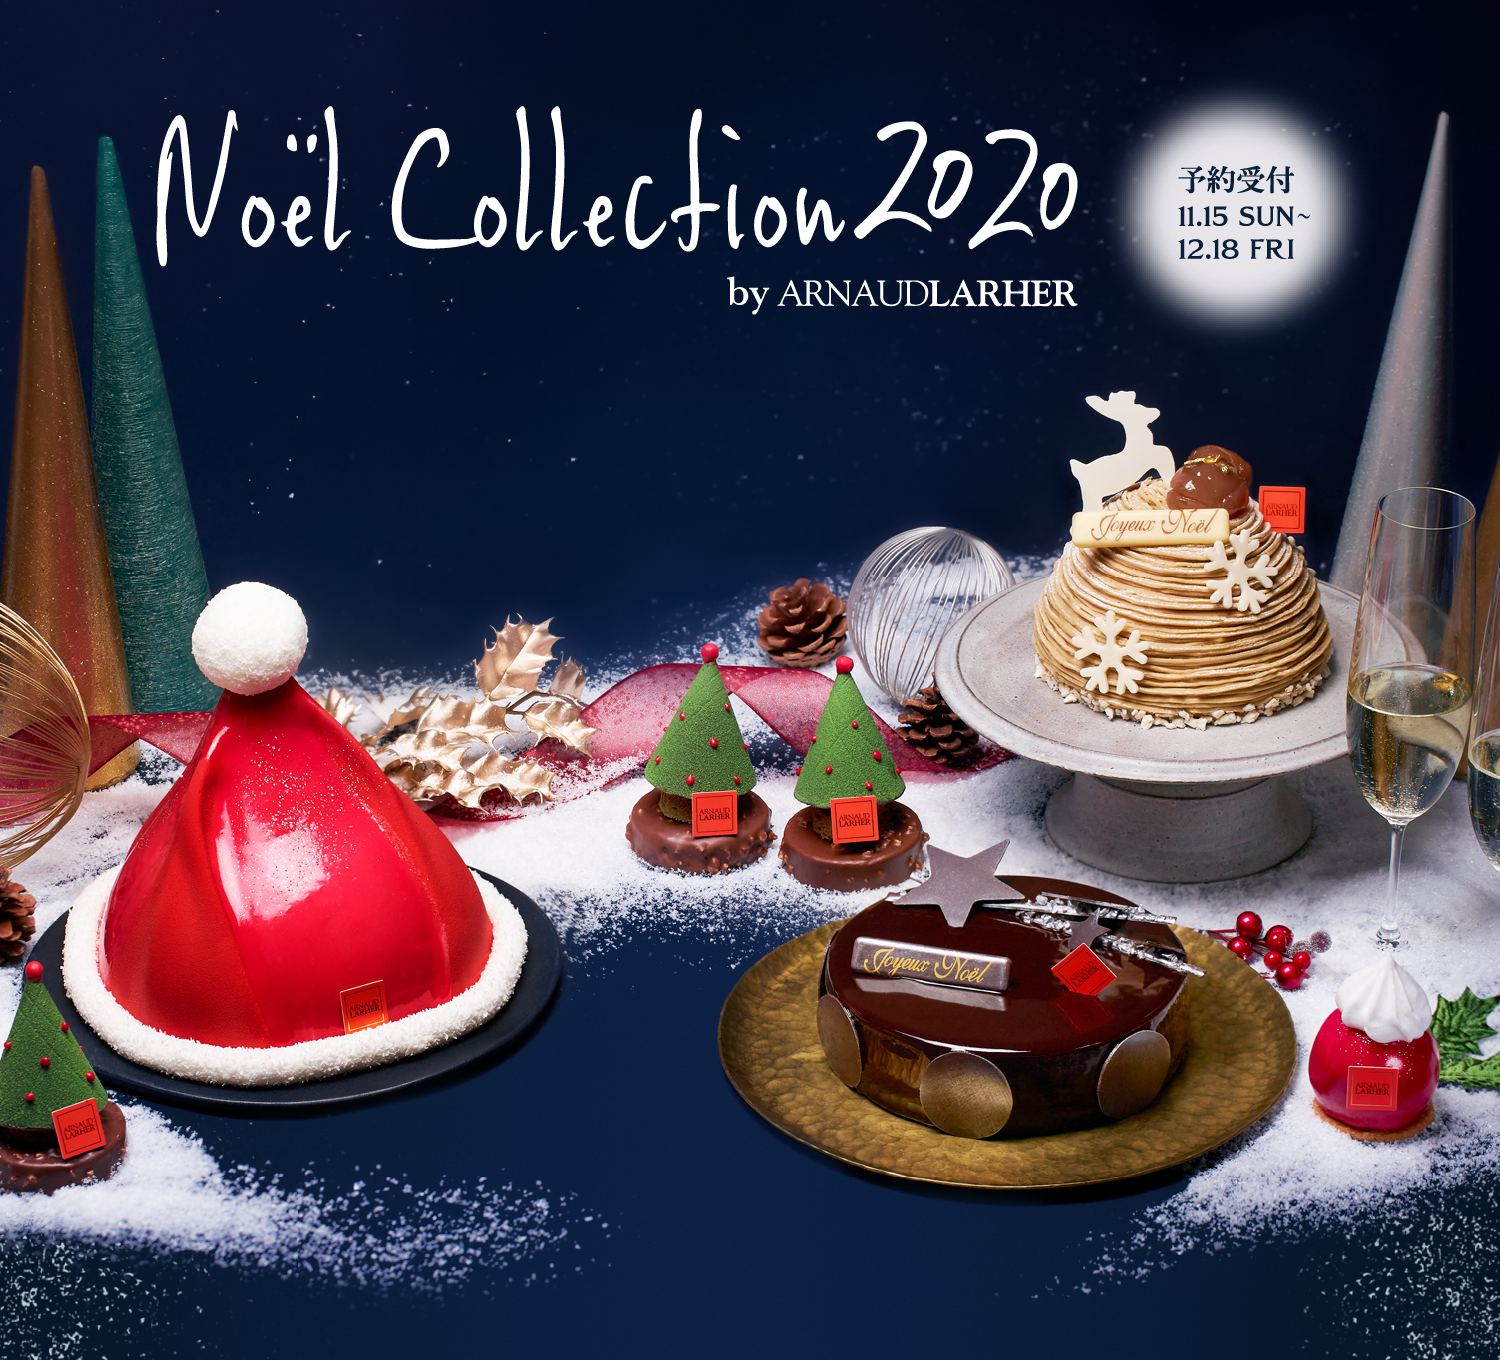 Noel Collection 2020